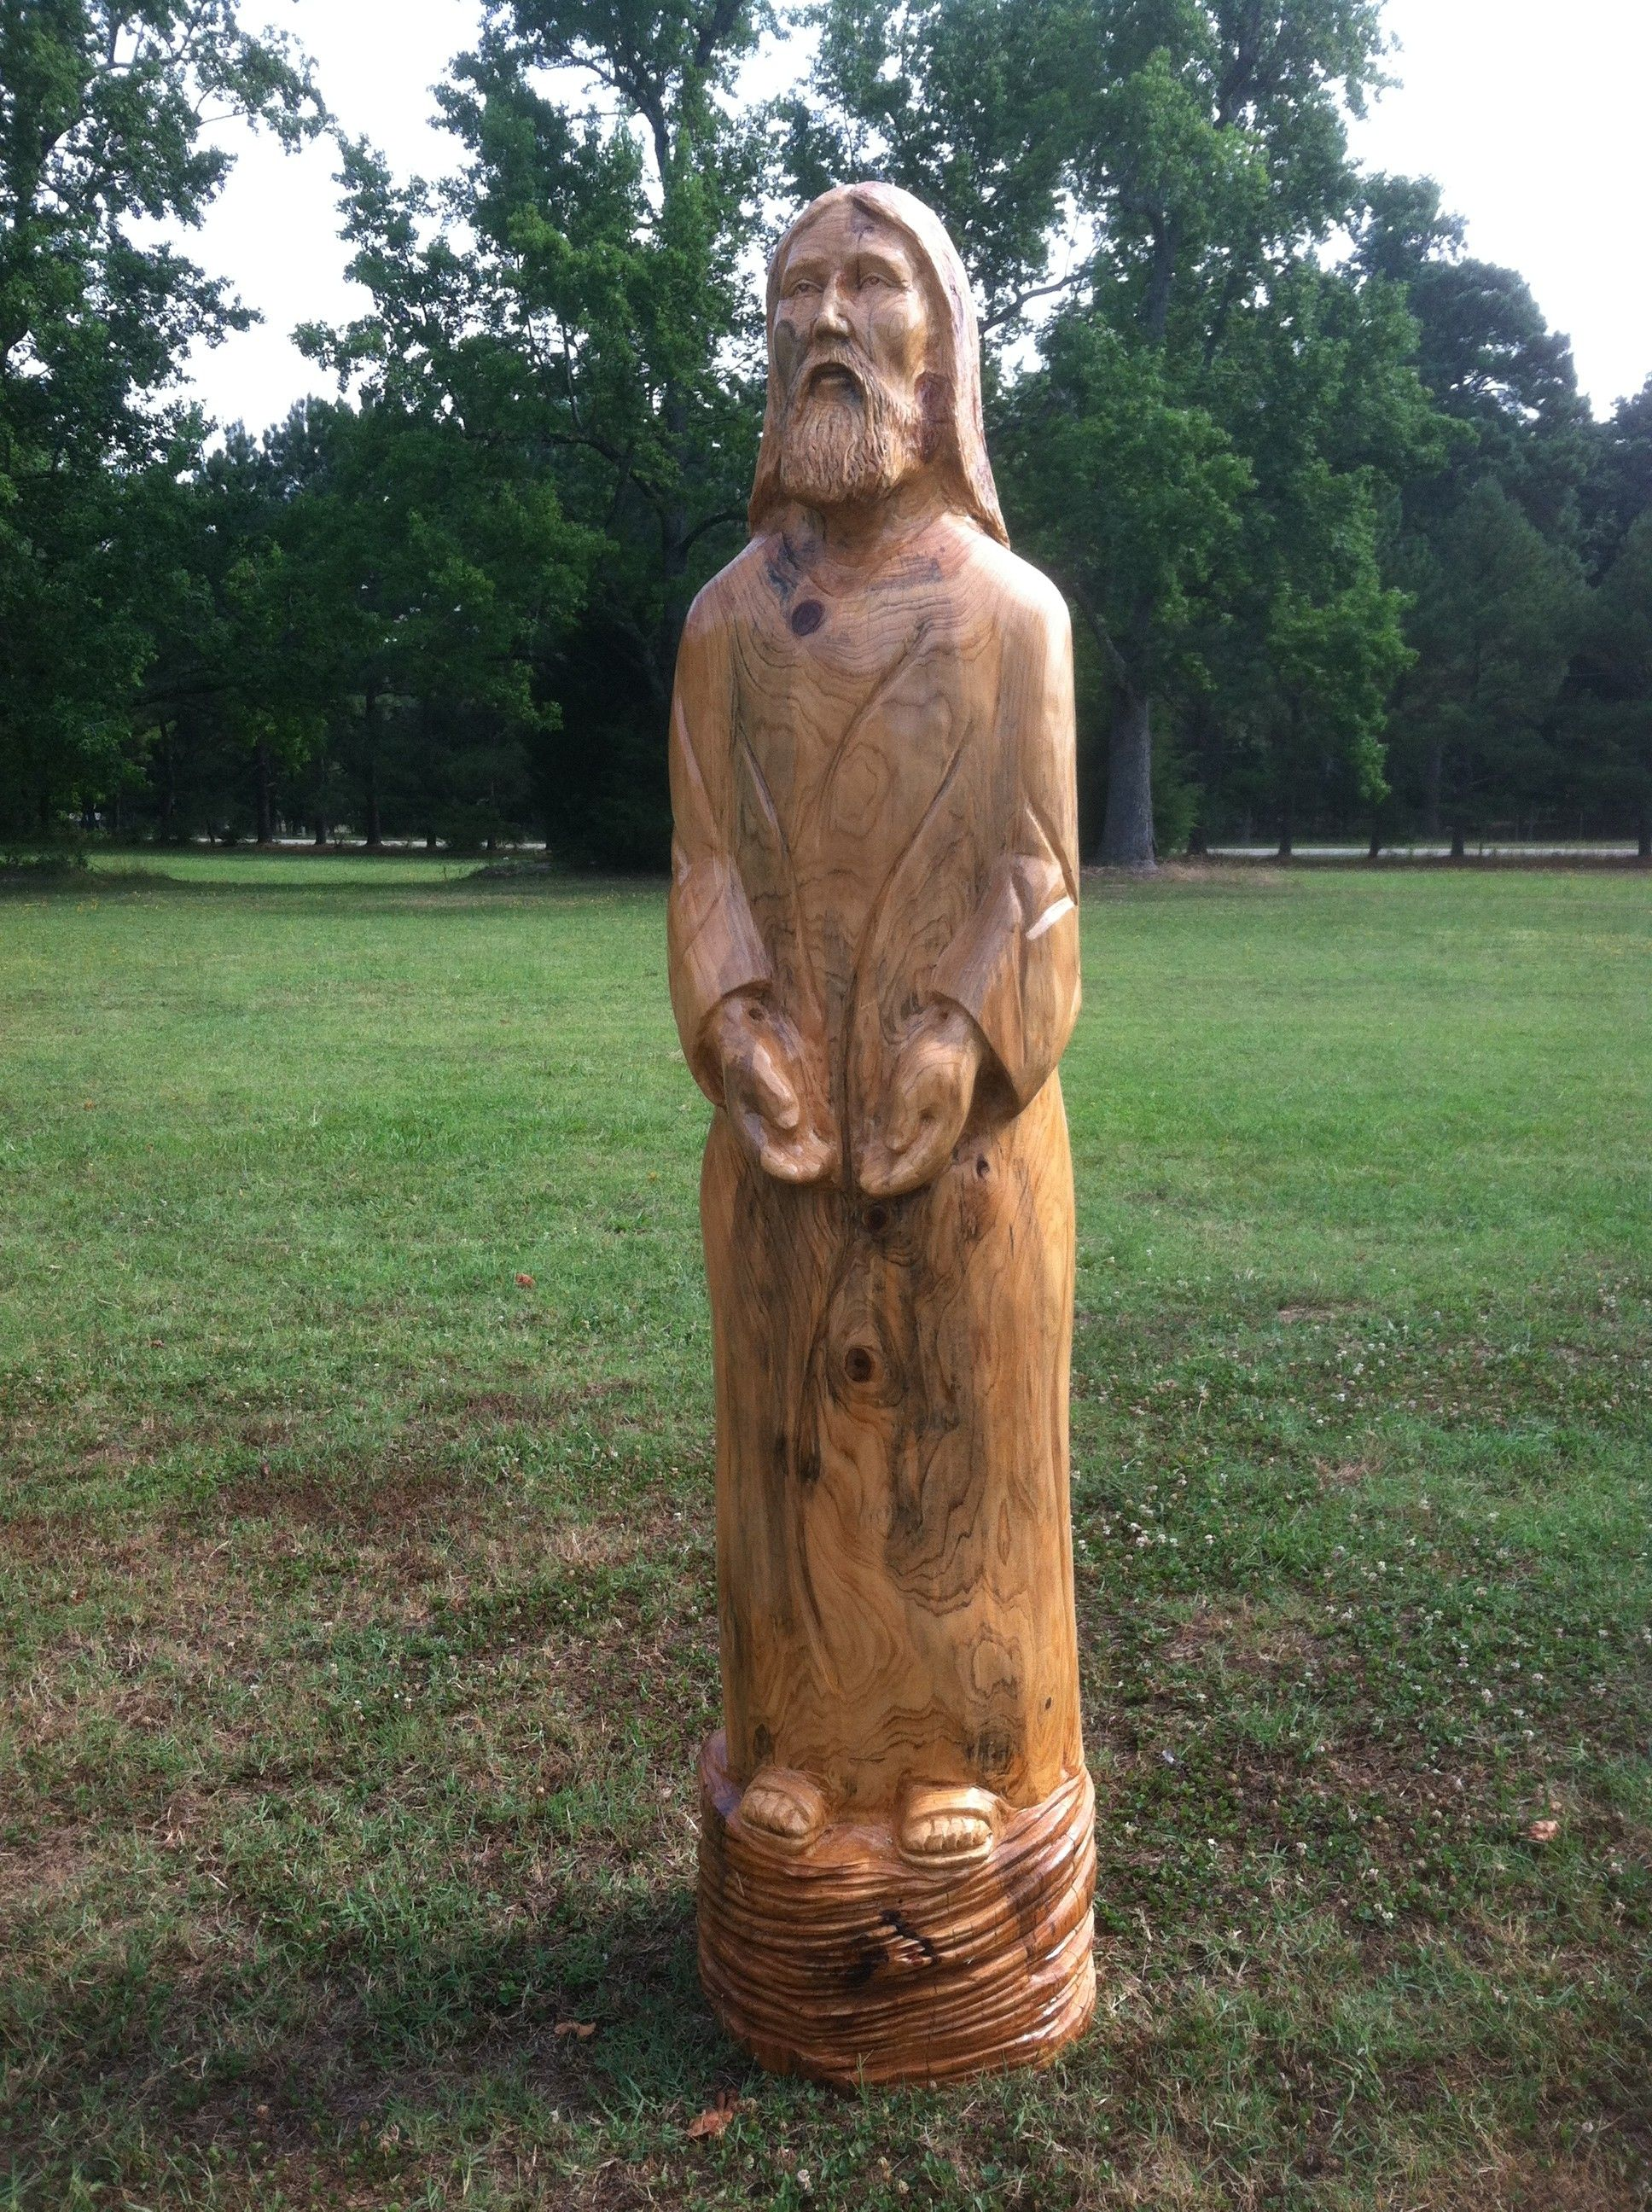 Chain saw carvings jrchainsawcarvings chainsaw